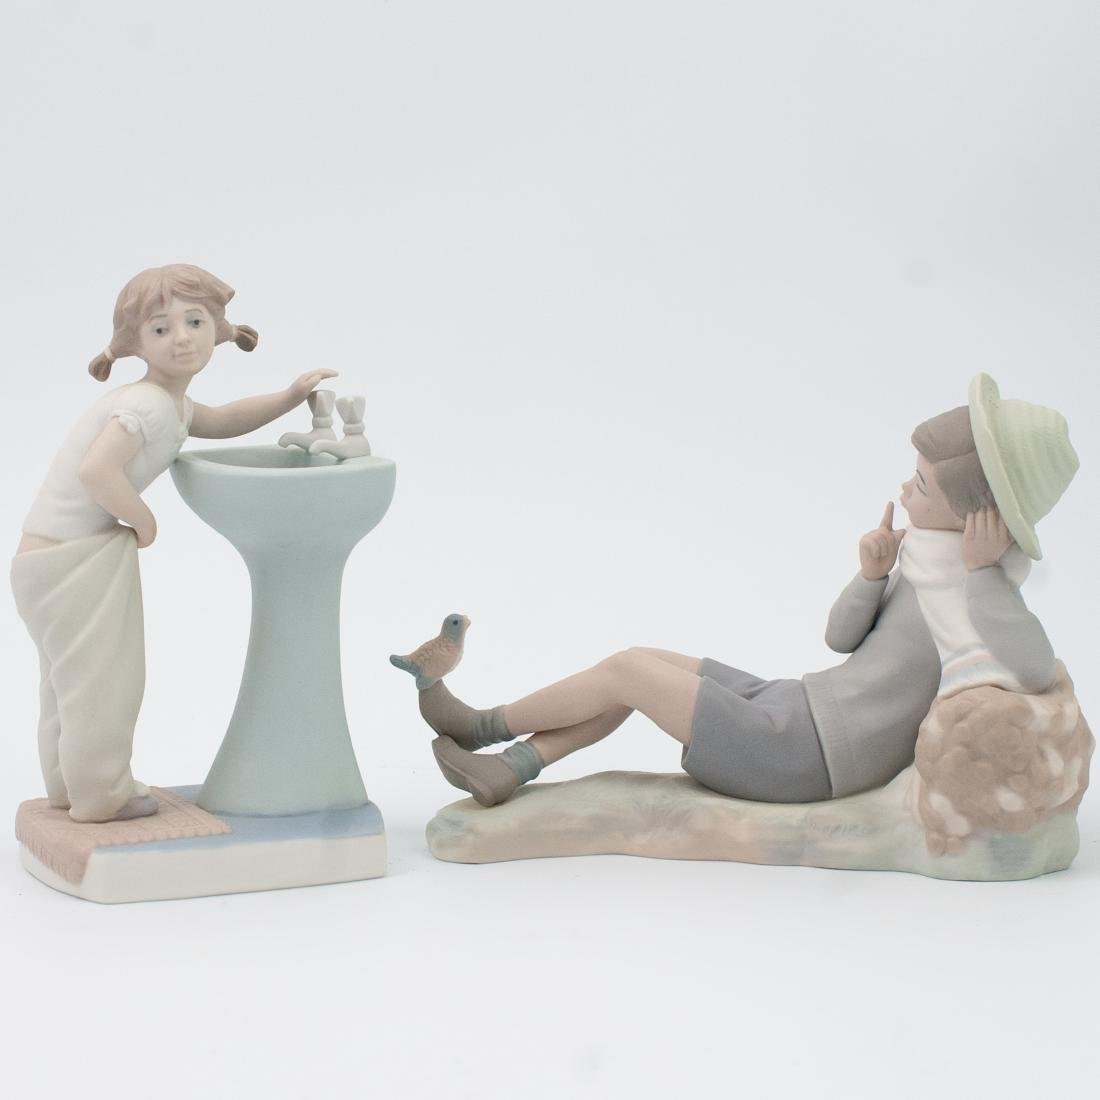 Lot of Two (2) Lladro Porcelain Figurines